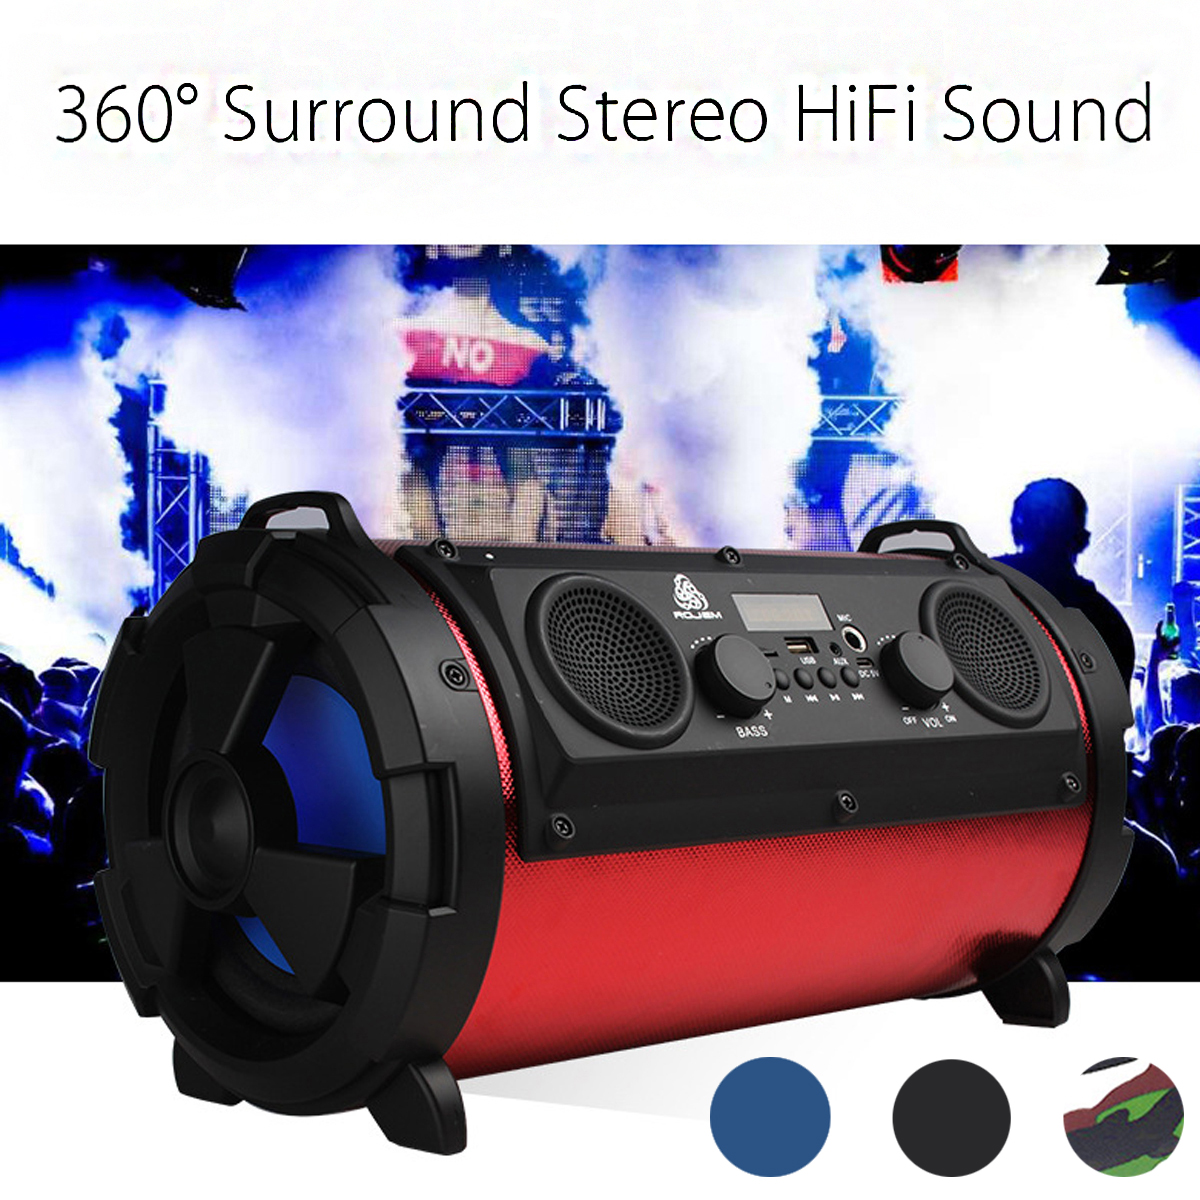 Portable Wireless Bluetooth Speaker Subwoofer With Mic Super Bass Woofer HIFI Outdoor Camping Stereo Loundspeaker portable wireless bluetooth speaker subwoofer with misic super bass speakers hifi stereo tf card outdoor loundspeaker